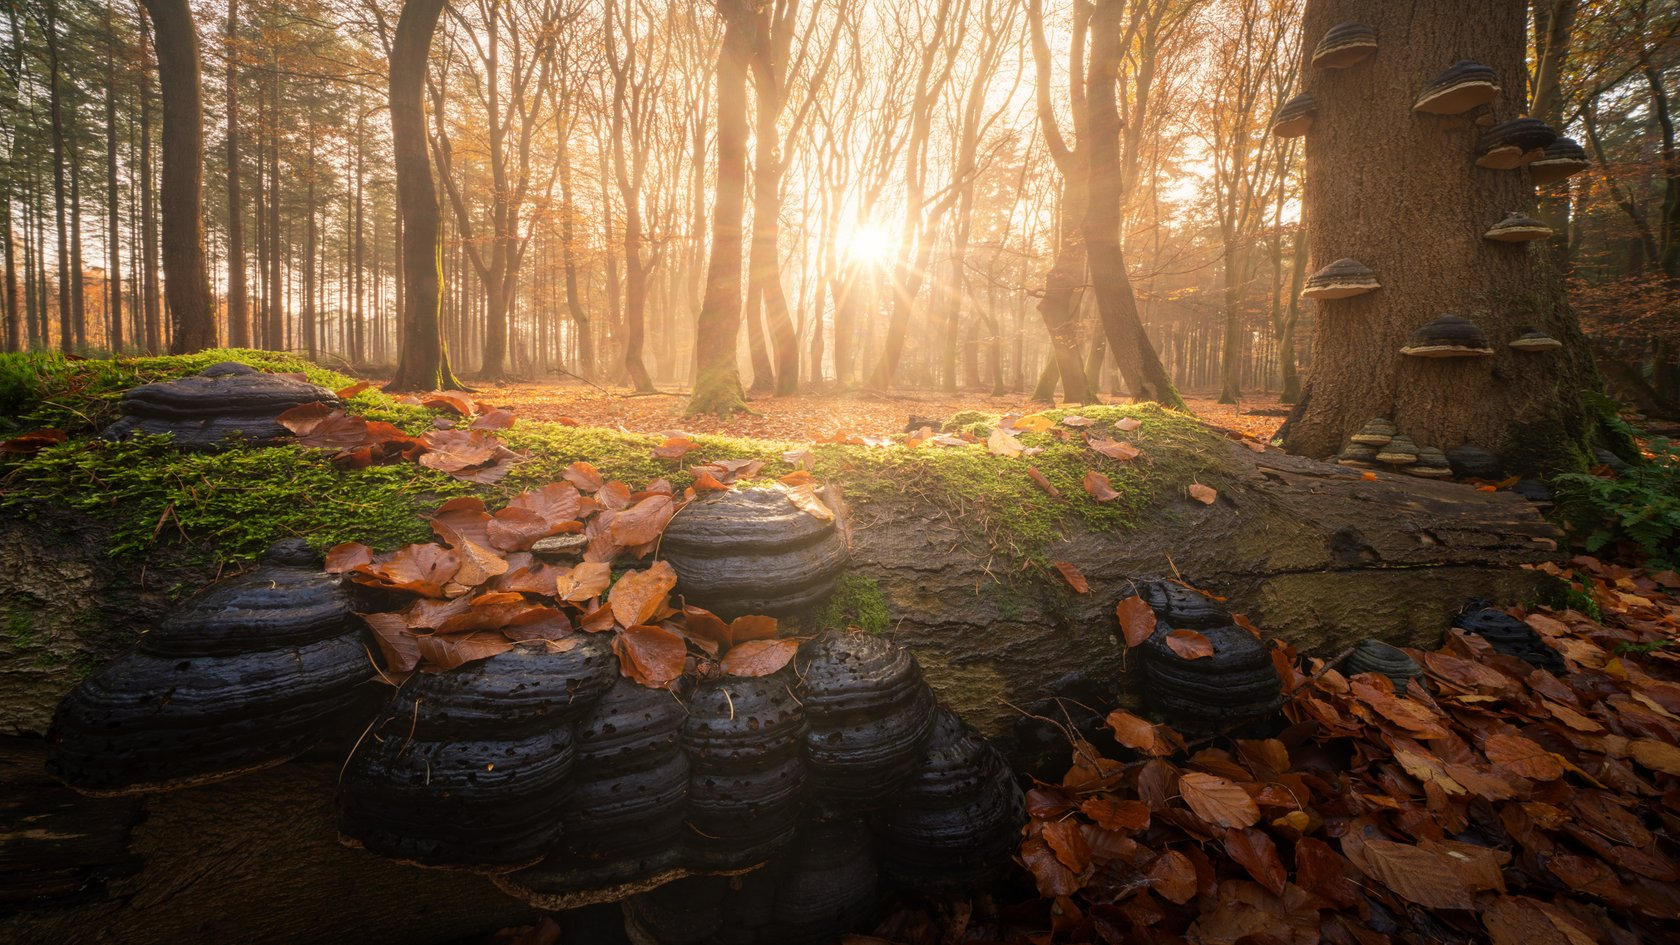 Magical Forests by Albert Dros. How to shoot and edit forest images Image1